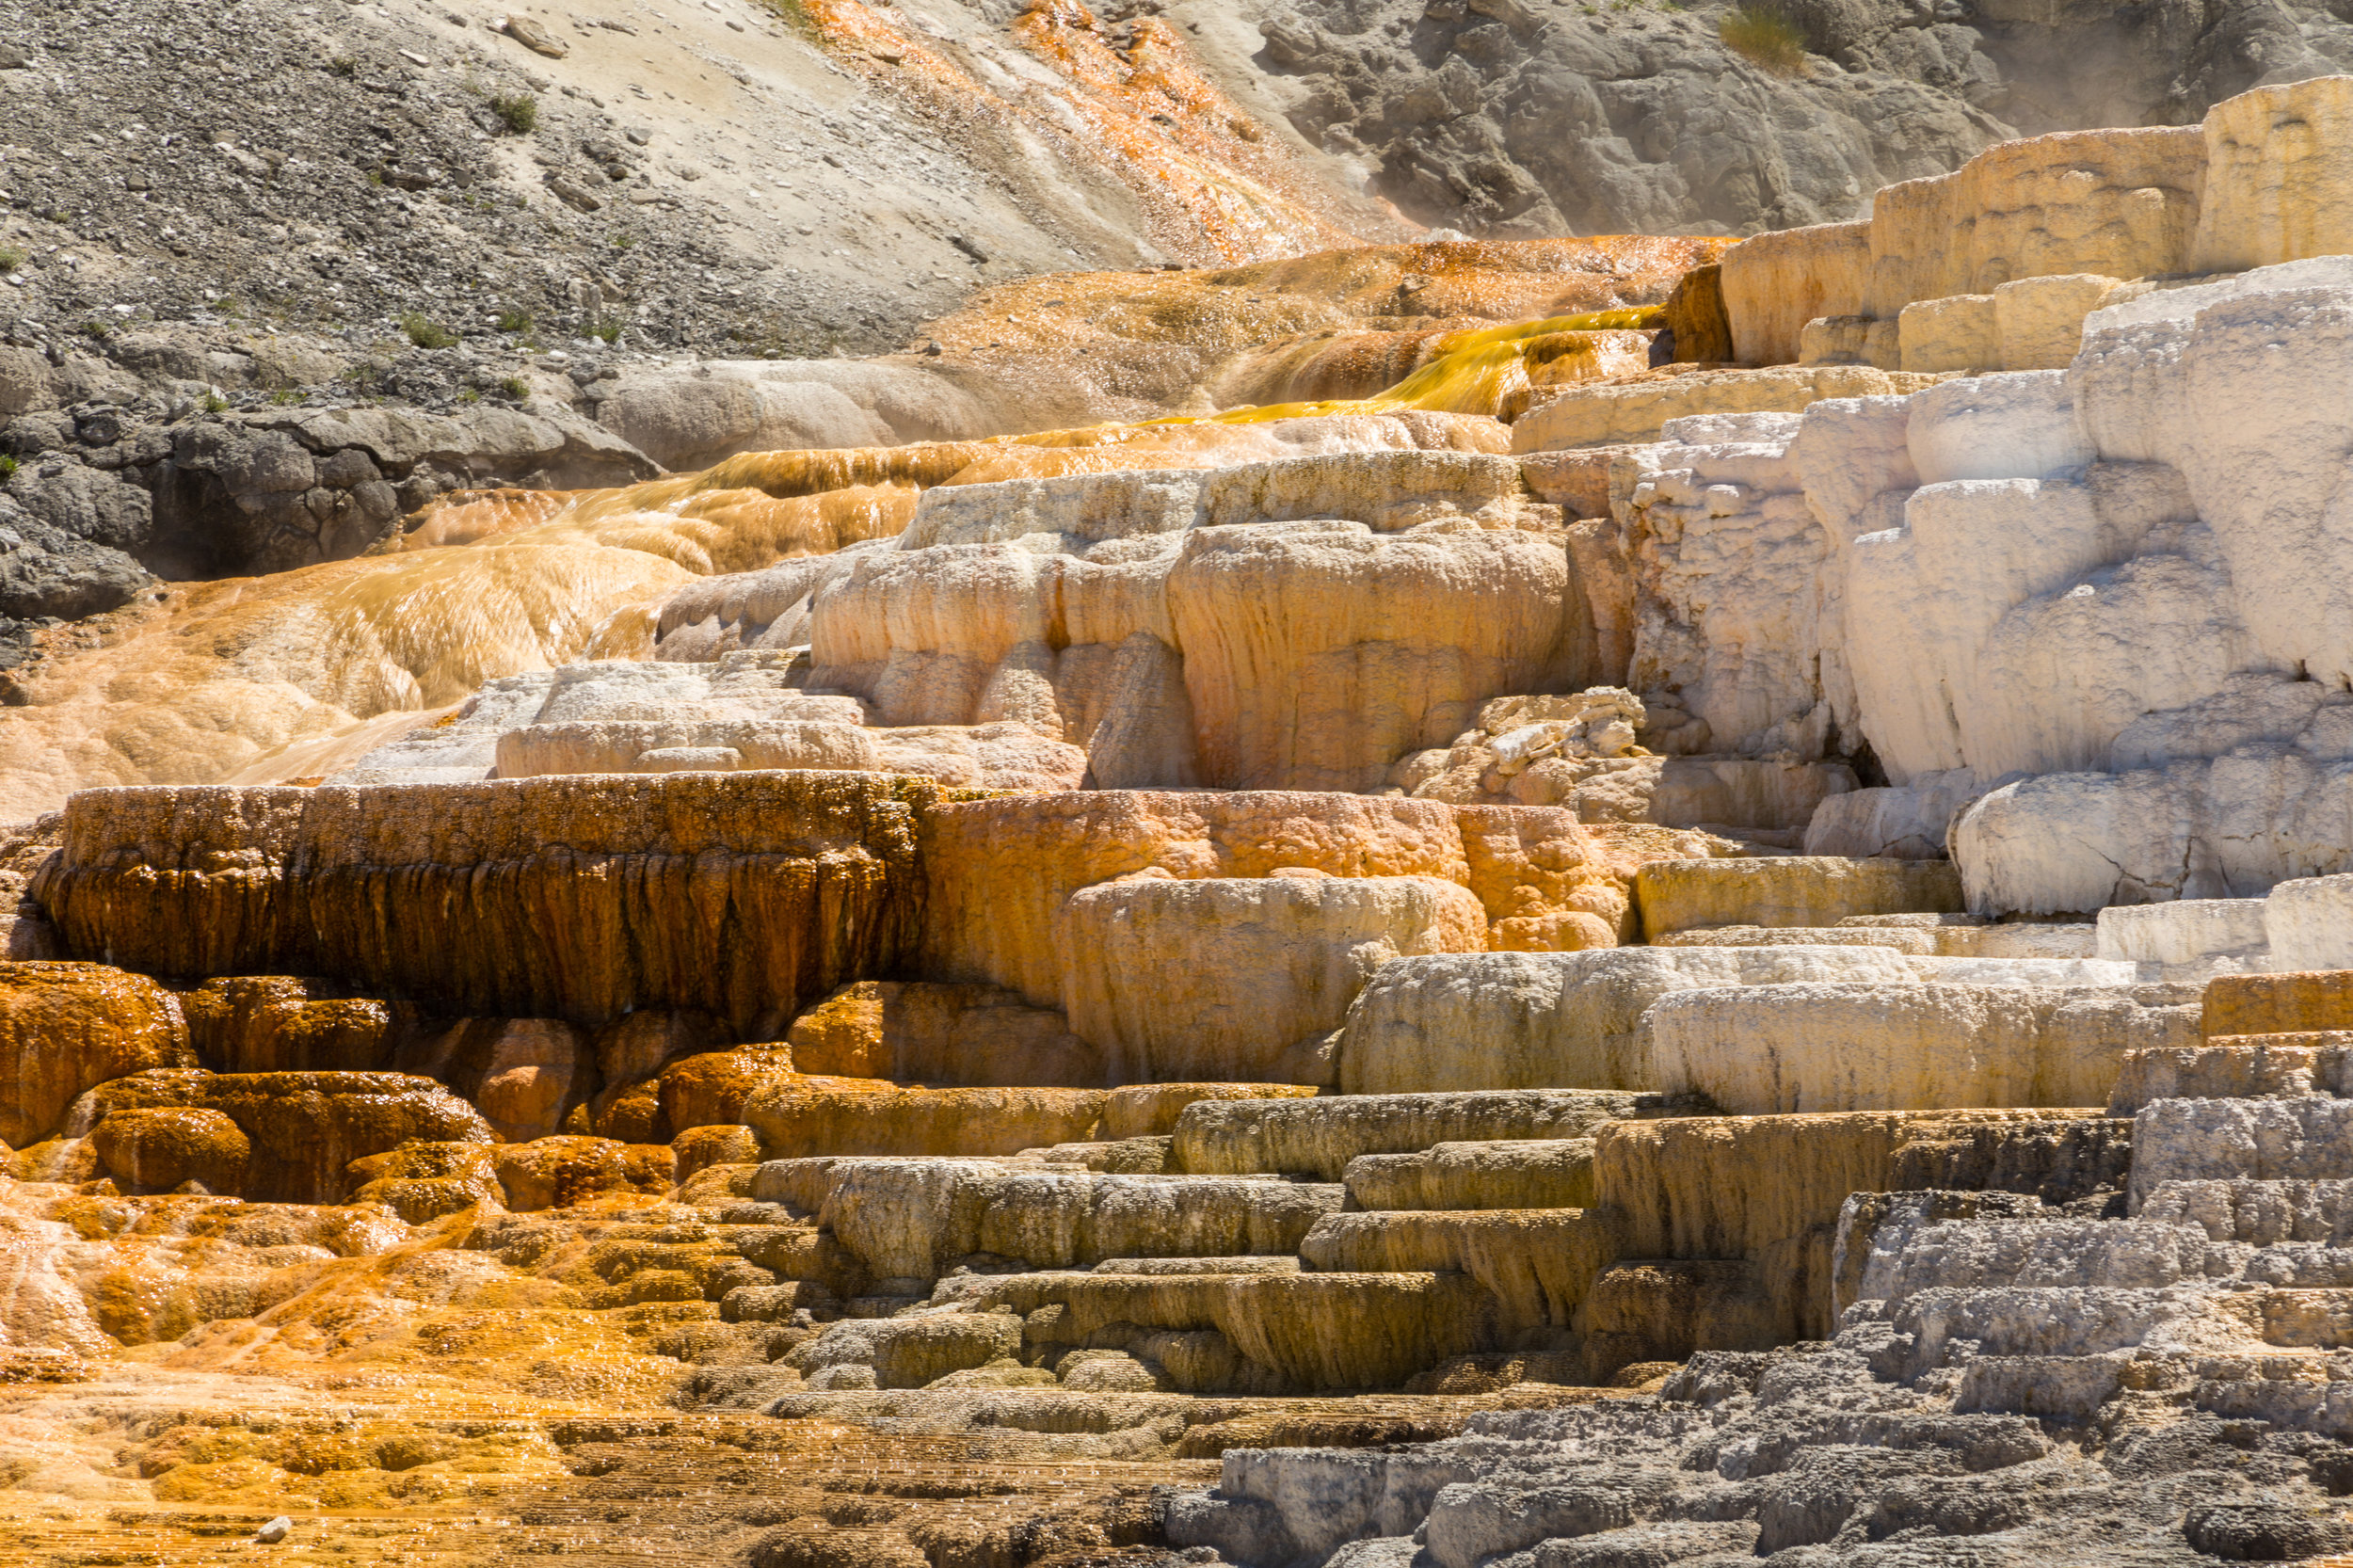 Mammoth Hot Springs, Yellowstone National Park, Image # 7308